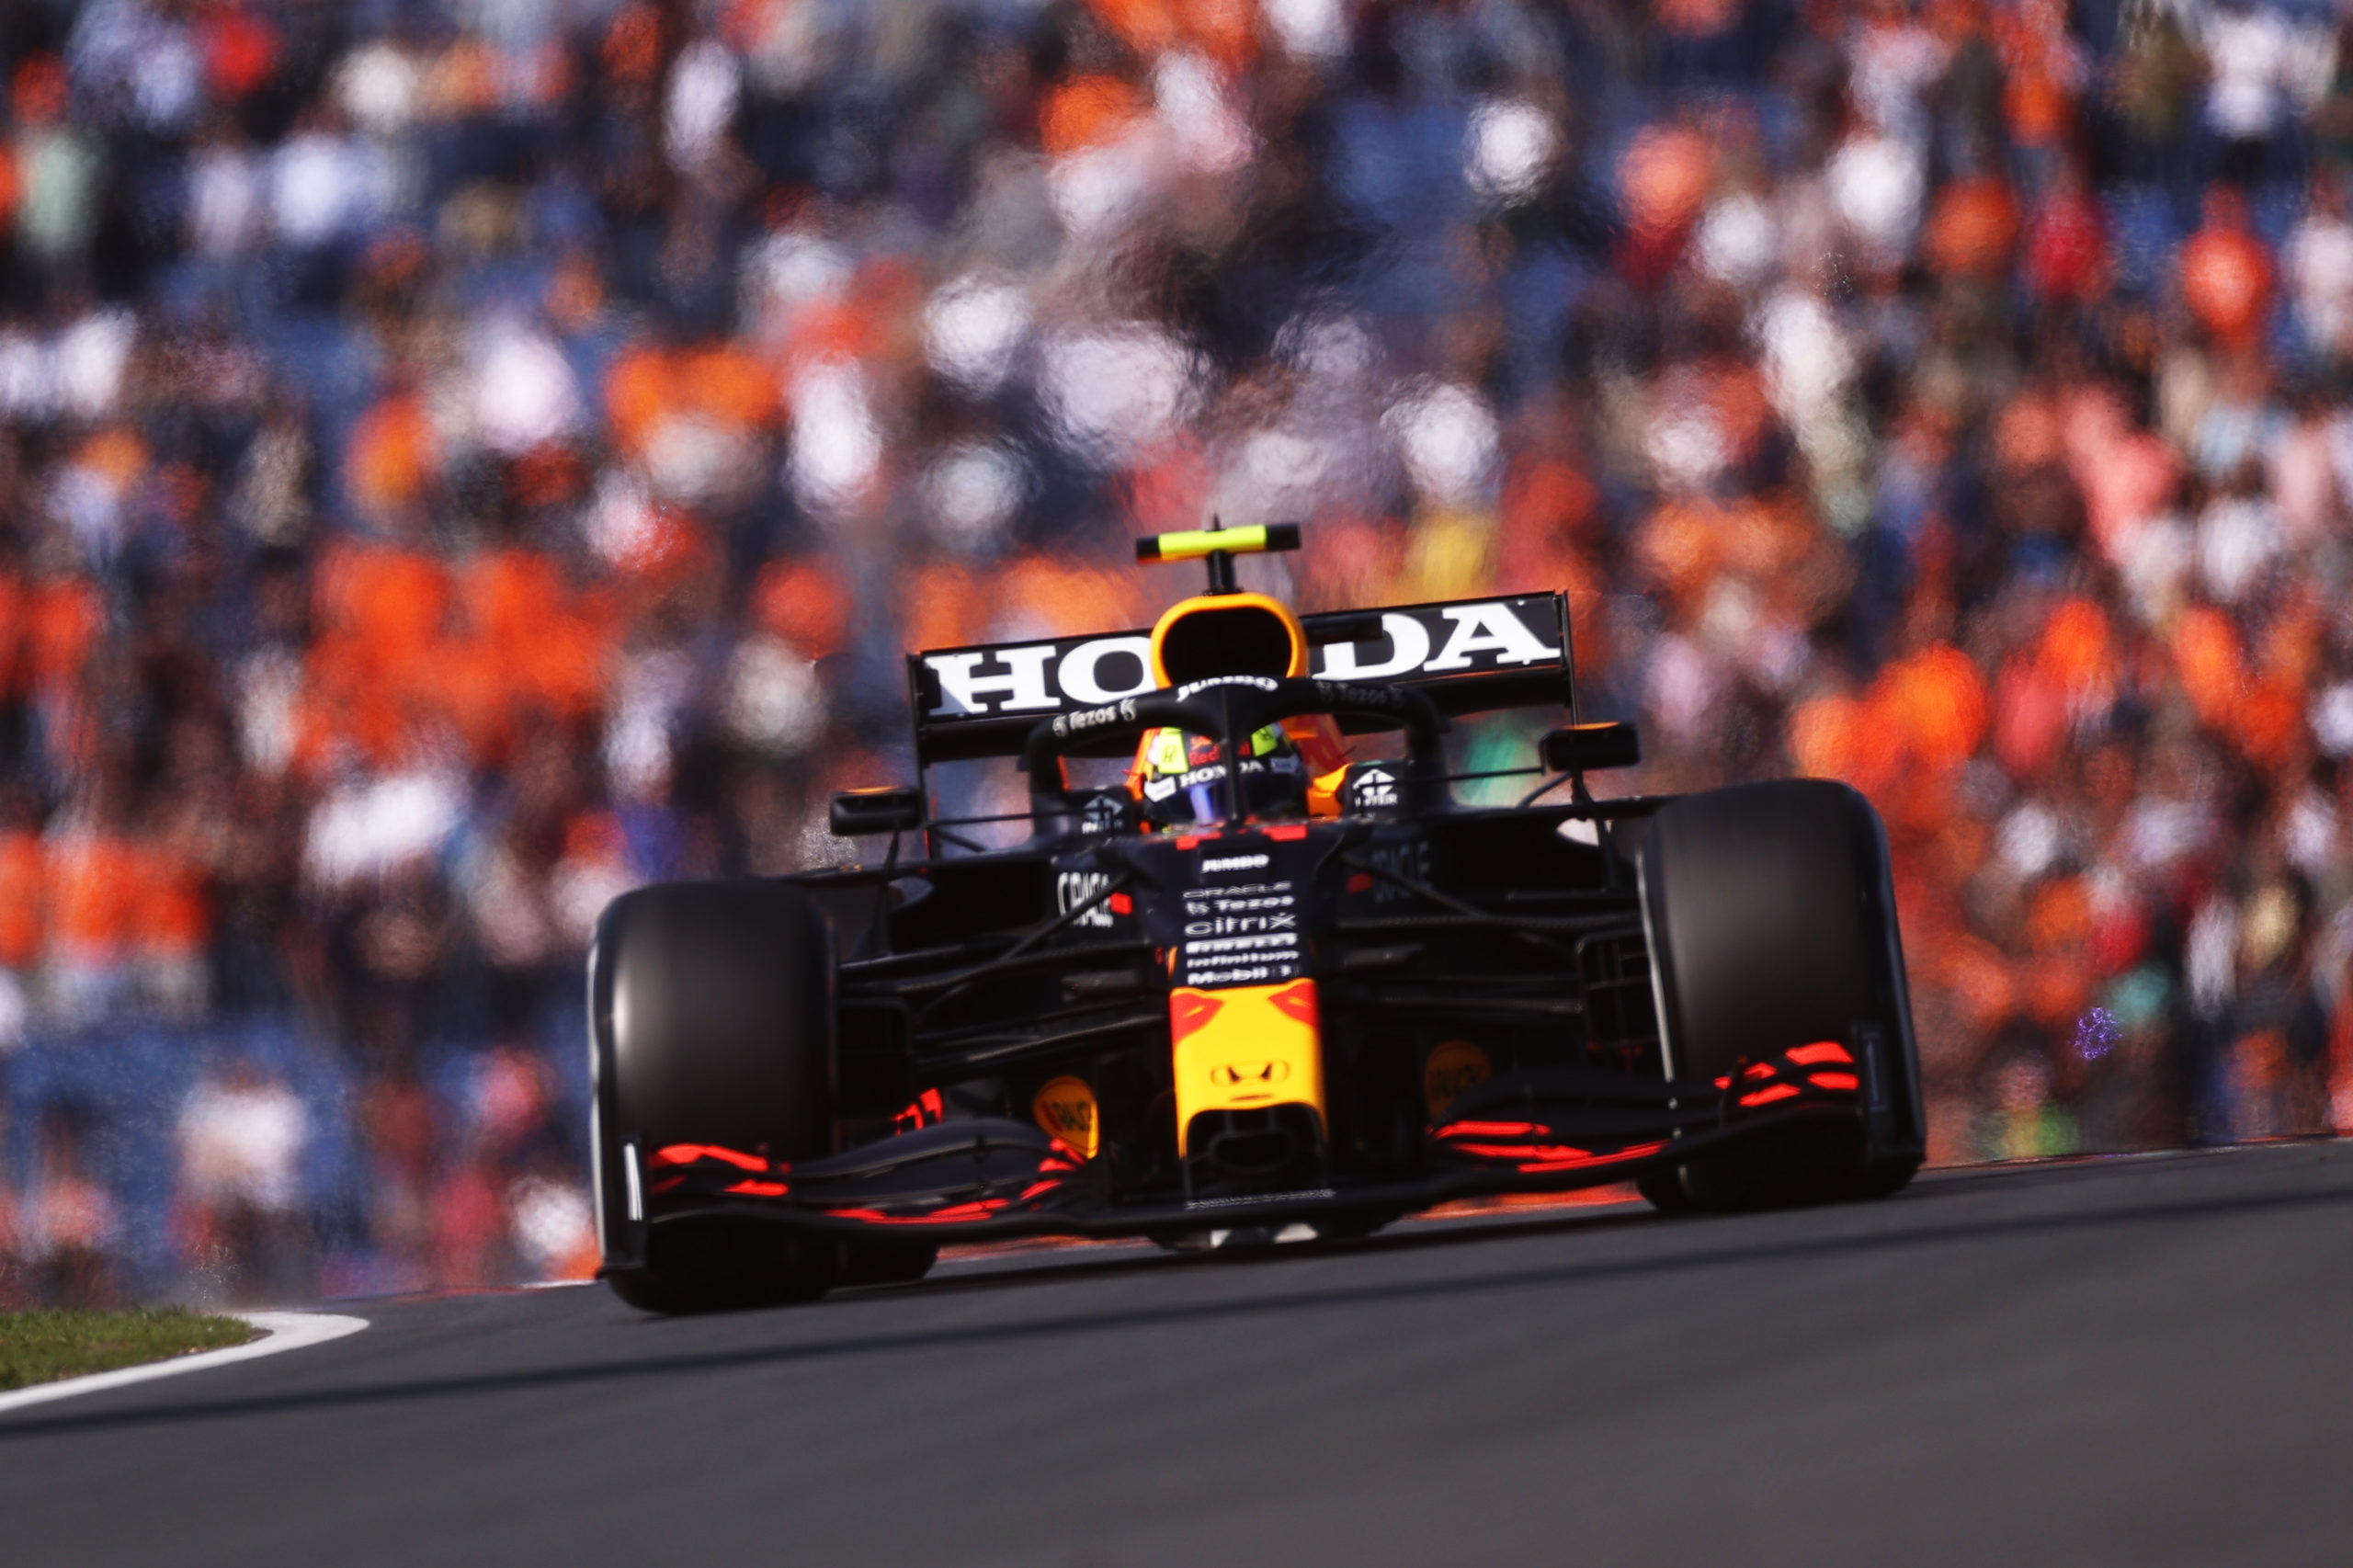 ZANDVOORT, NETHERLANDS - SEPTEMBER 03: Sergio Perez of Mexico driving the (11) Red Bull Racing RB16B Honda during practice ahead of the F1 Grand Prix of The Netherlands at Circuit Zandvoort on September 03, 2021 in Zandvoort, Netherlands. (Photo by Lars Baron/Getty Images) // Getty Images / Red Bull Content Pool  // SI202109030135 // Usage for editorial use only //